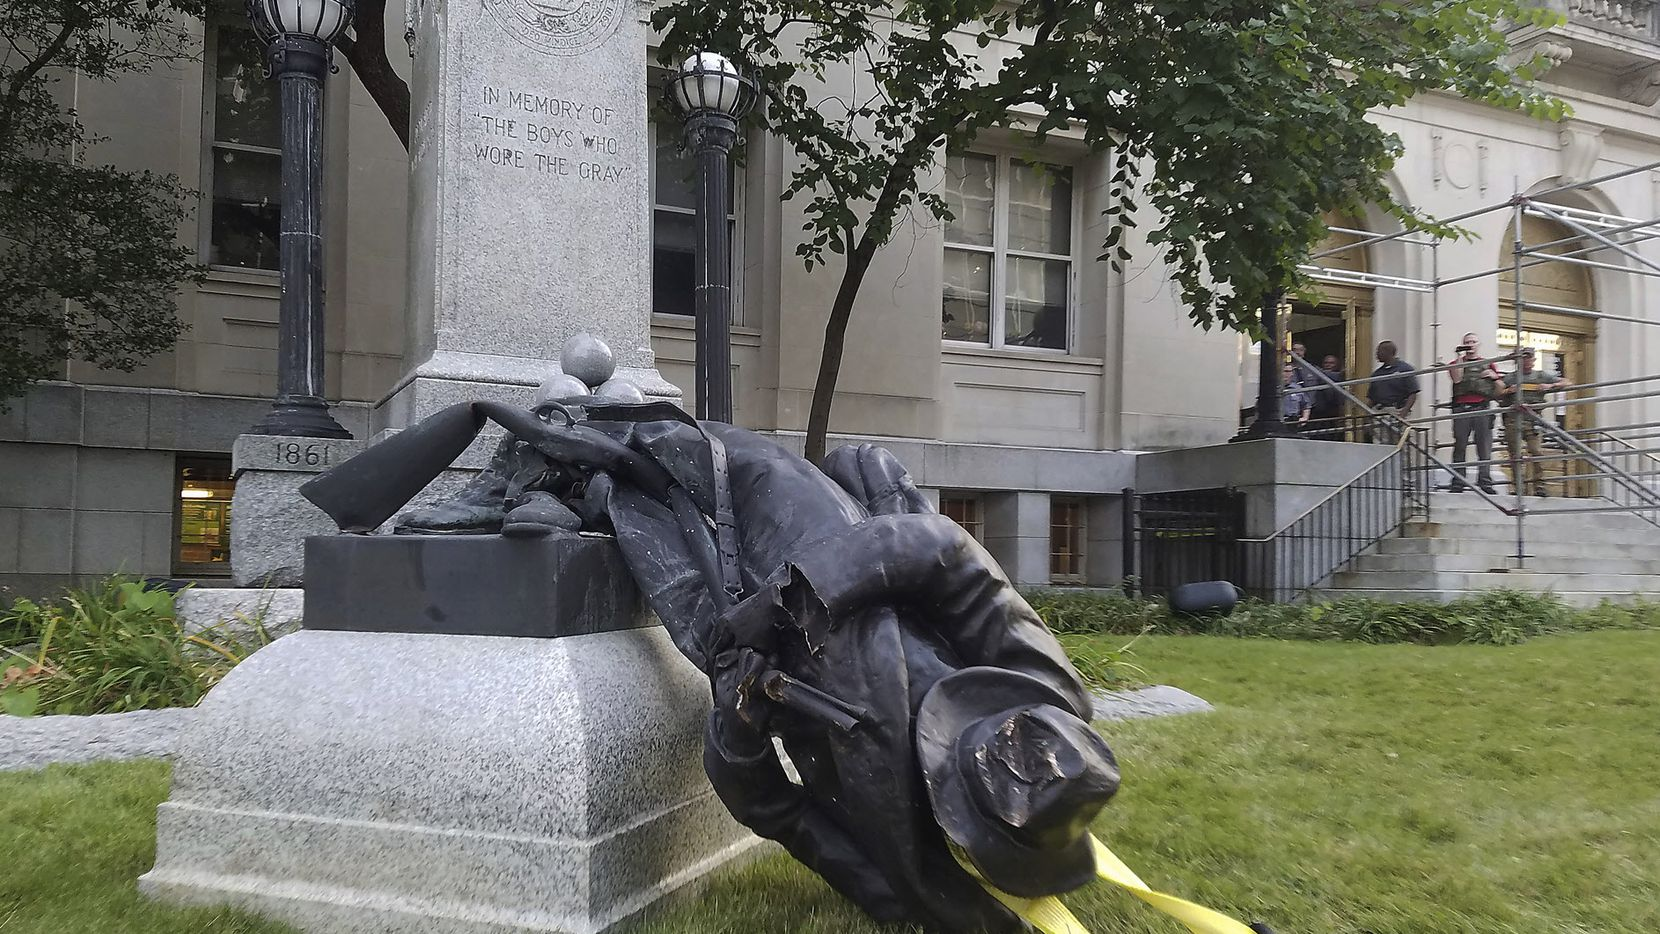 A toppled Confederate statue lies on the ground on Monday, Aug. 14, 2017, in Durham, N.C. Activists on Monday evening used a rope to pull down the monument outside a Durham courthouse. The Durham protest was in response to a white nationalist rally held in Charlottesville, Va, over the weekend.